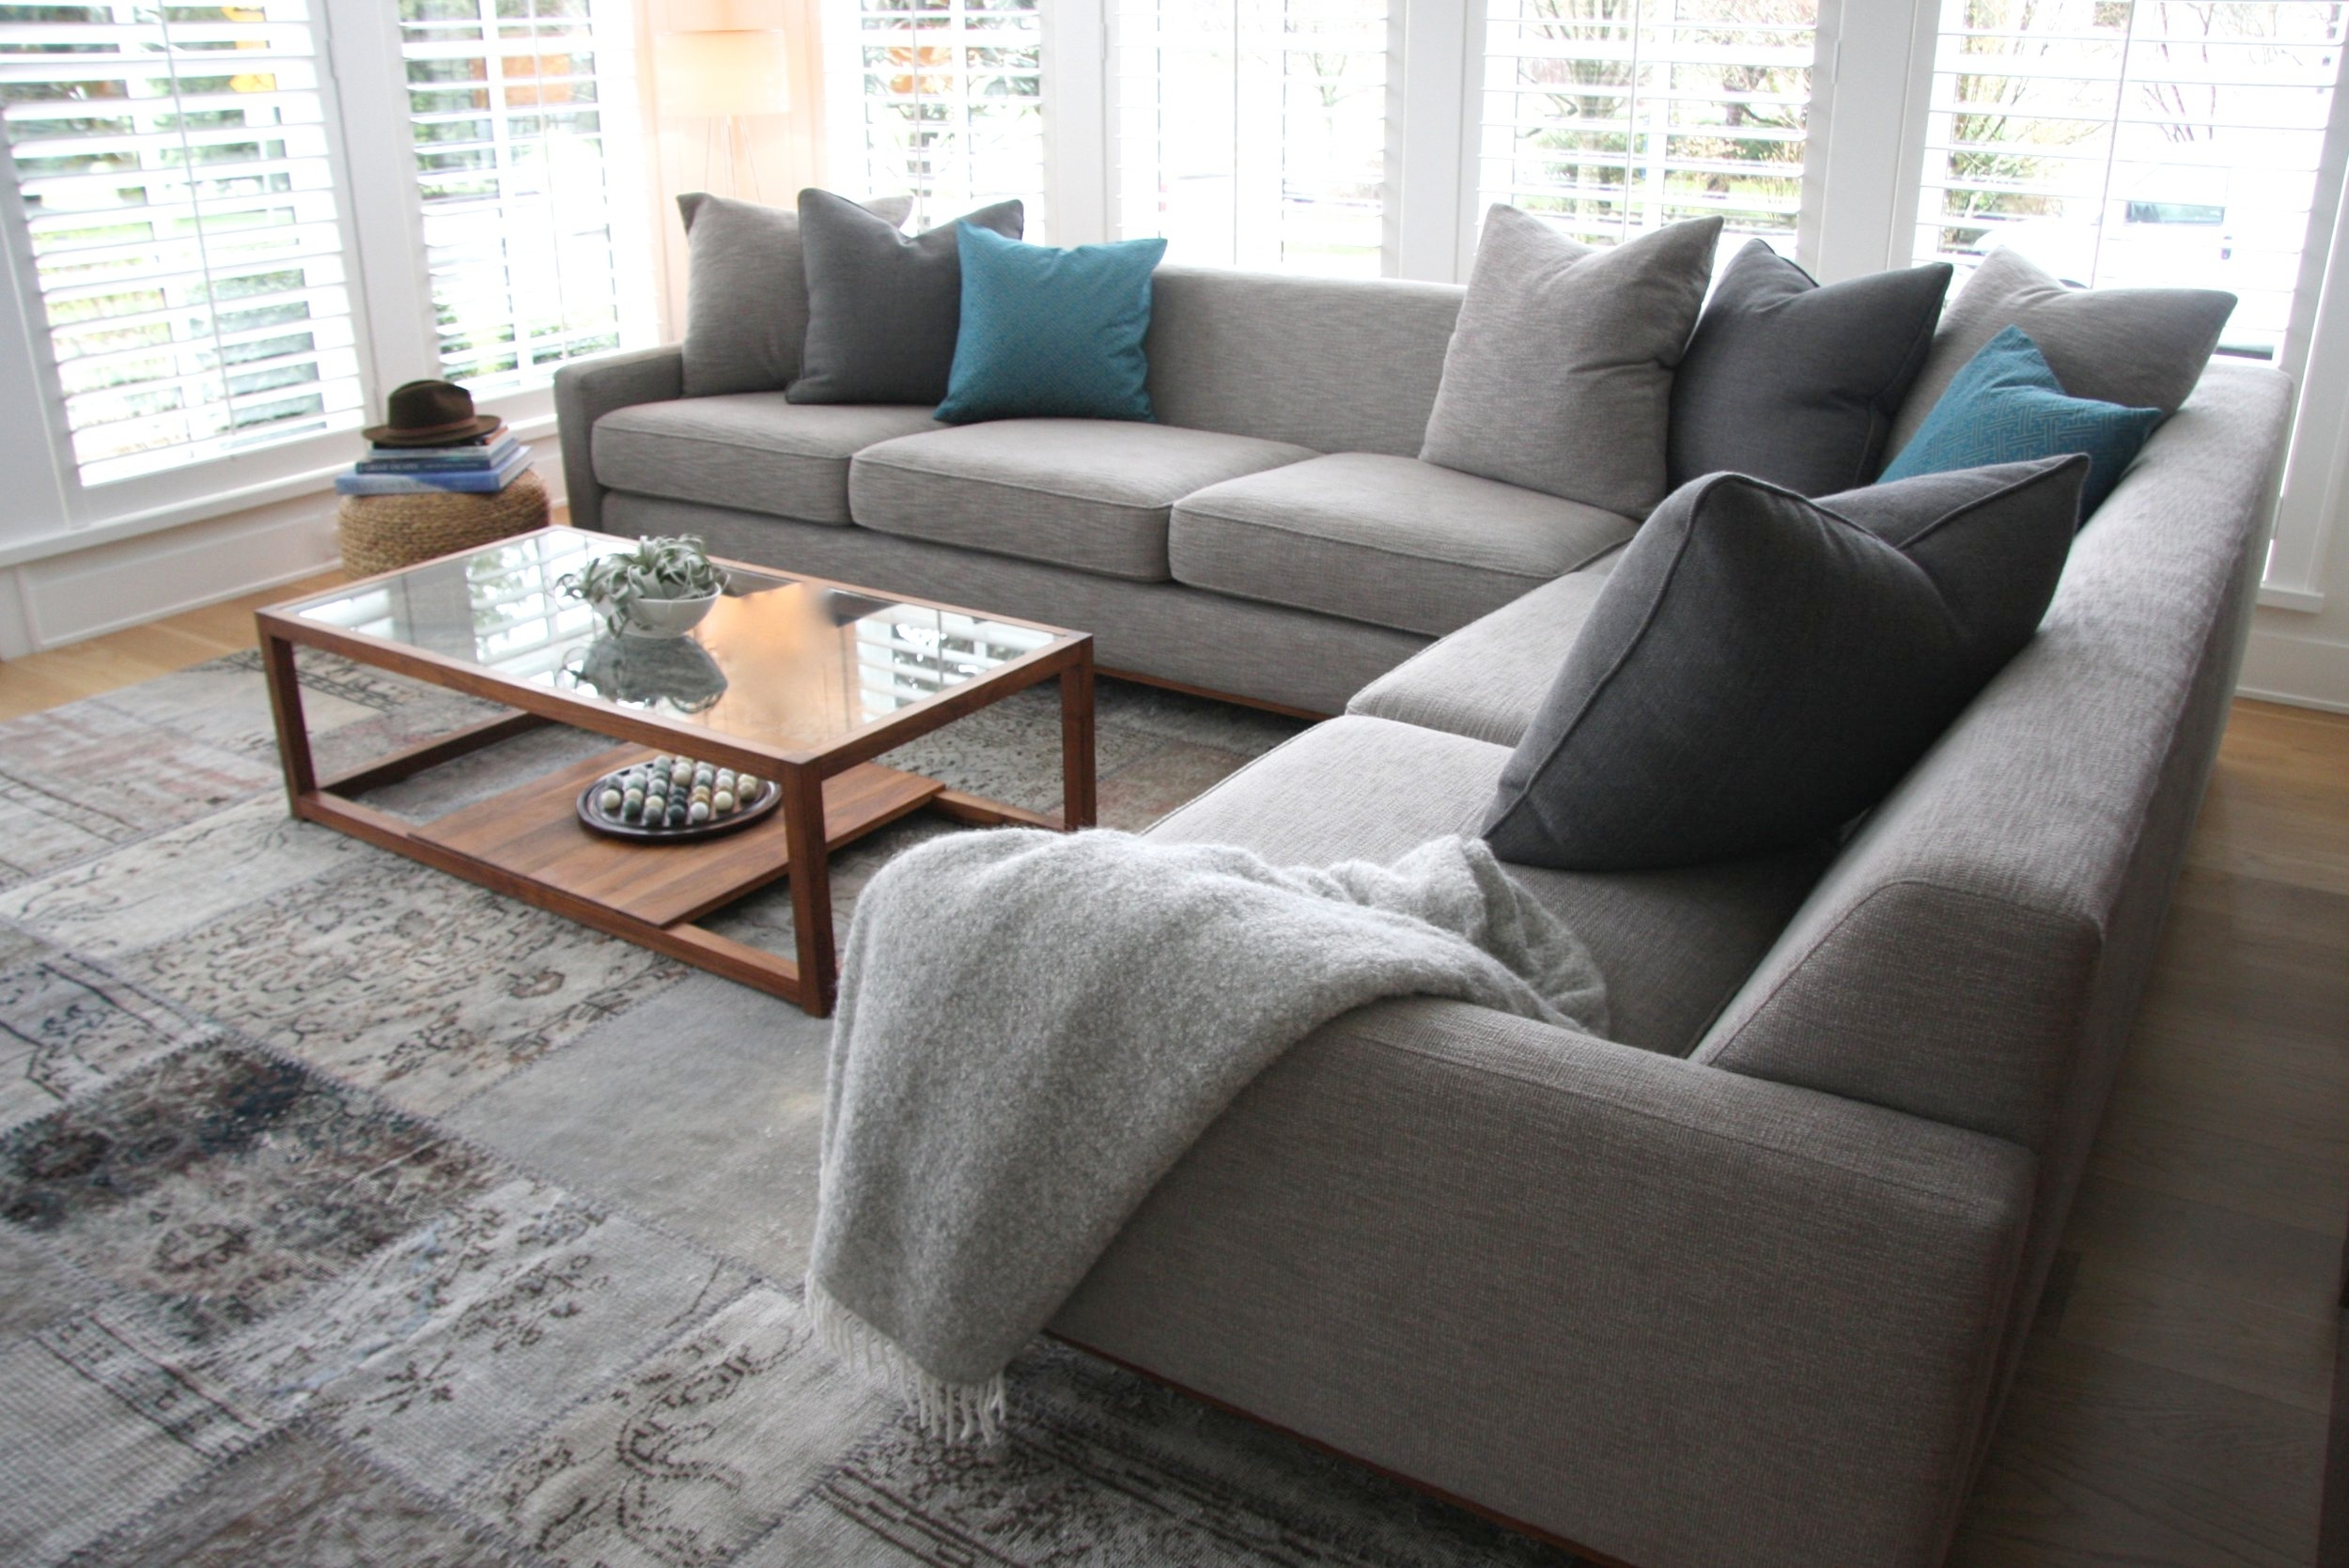 Bespoke sectional sofa with a mix of comfy toss pillows.